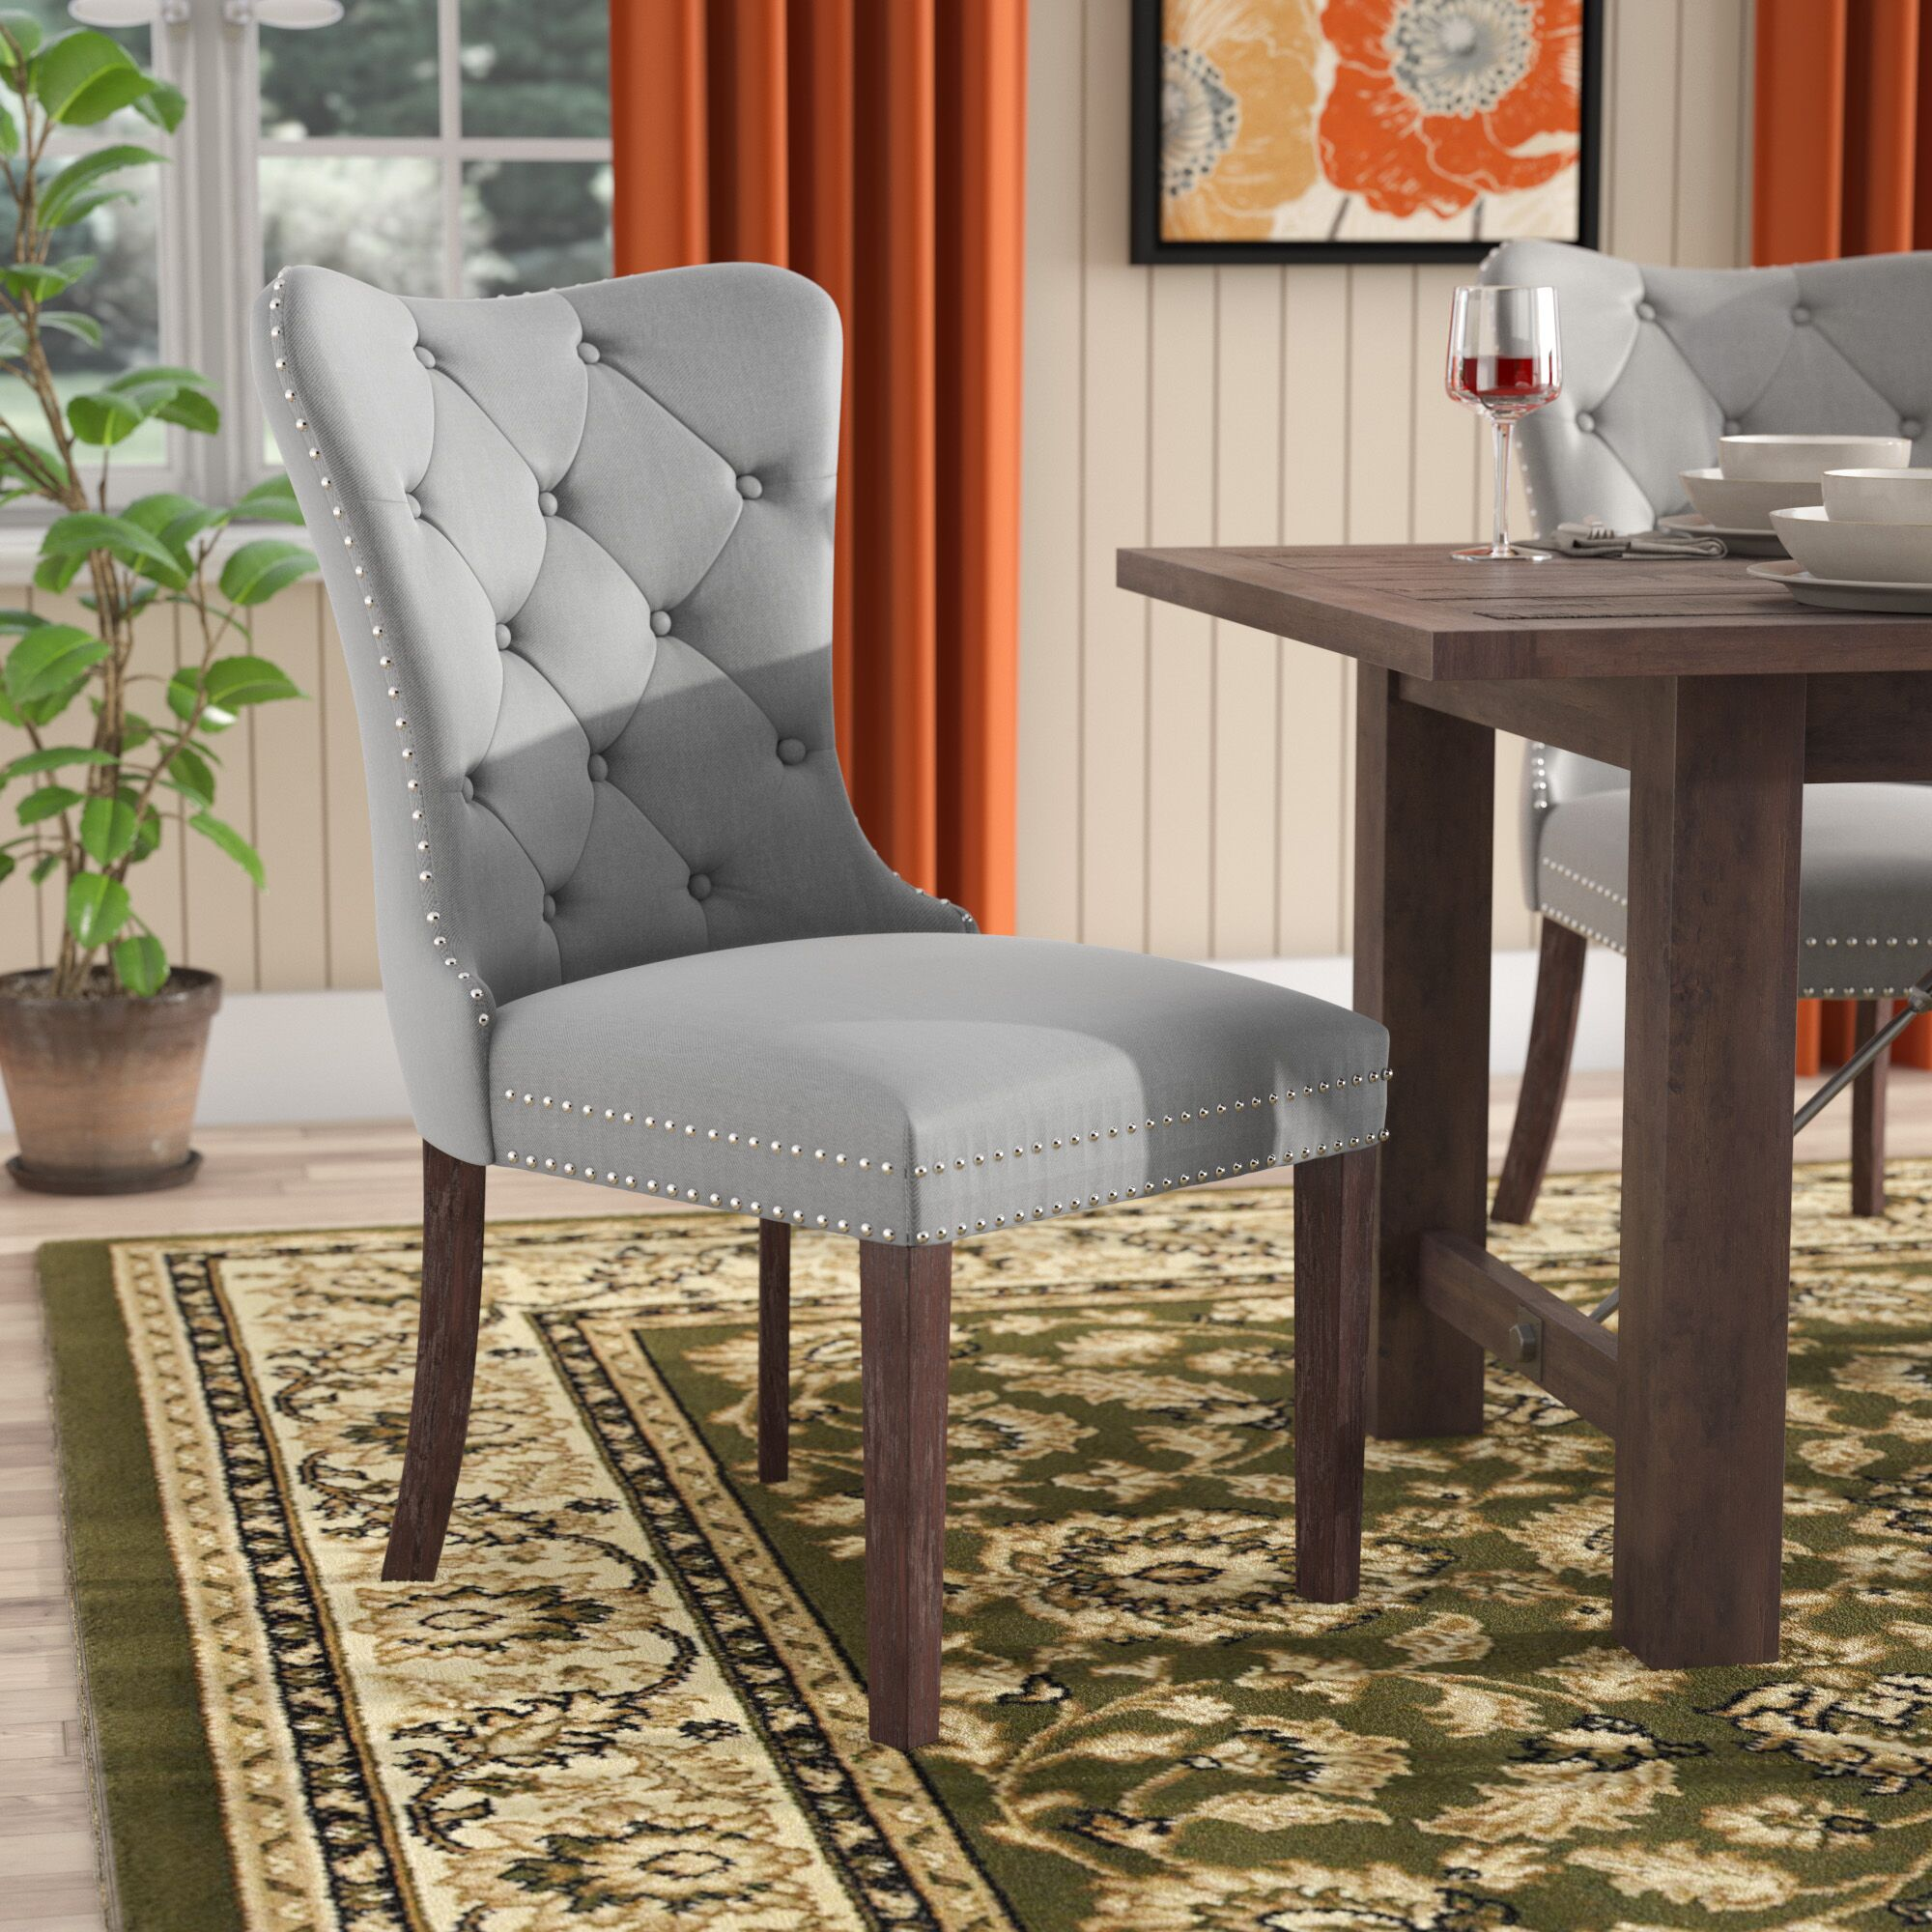 Ratchford Upholstered Dining Chair